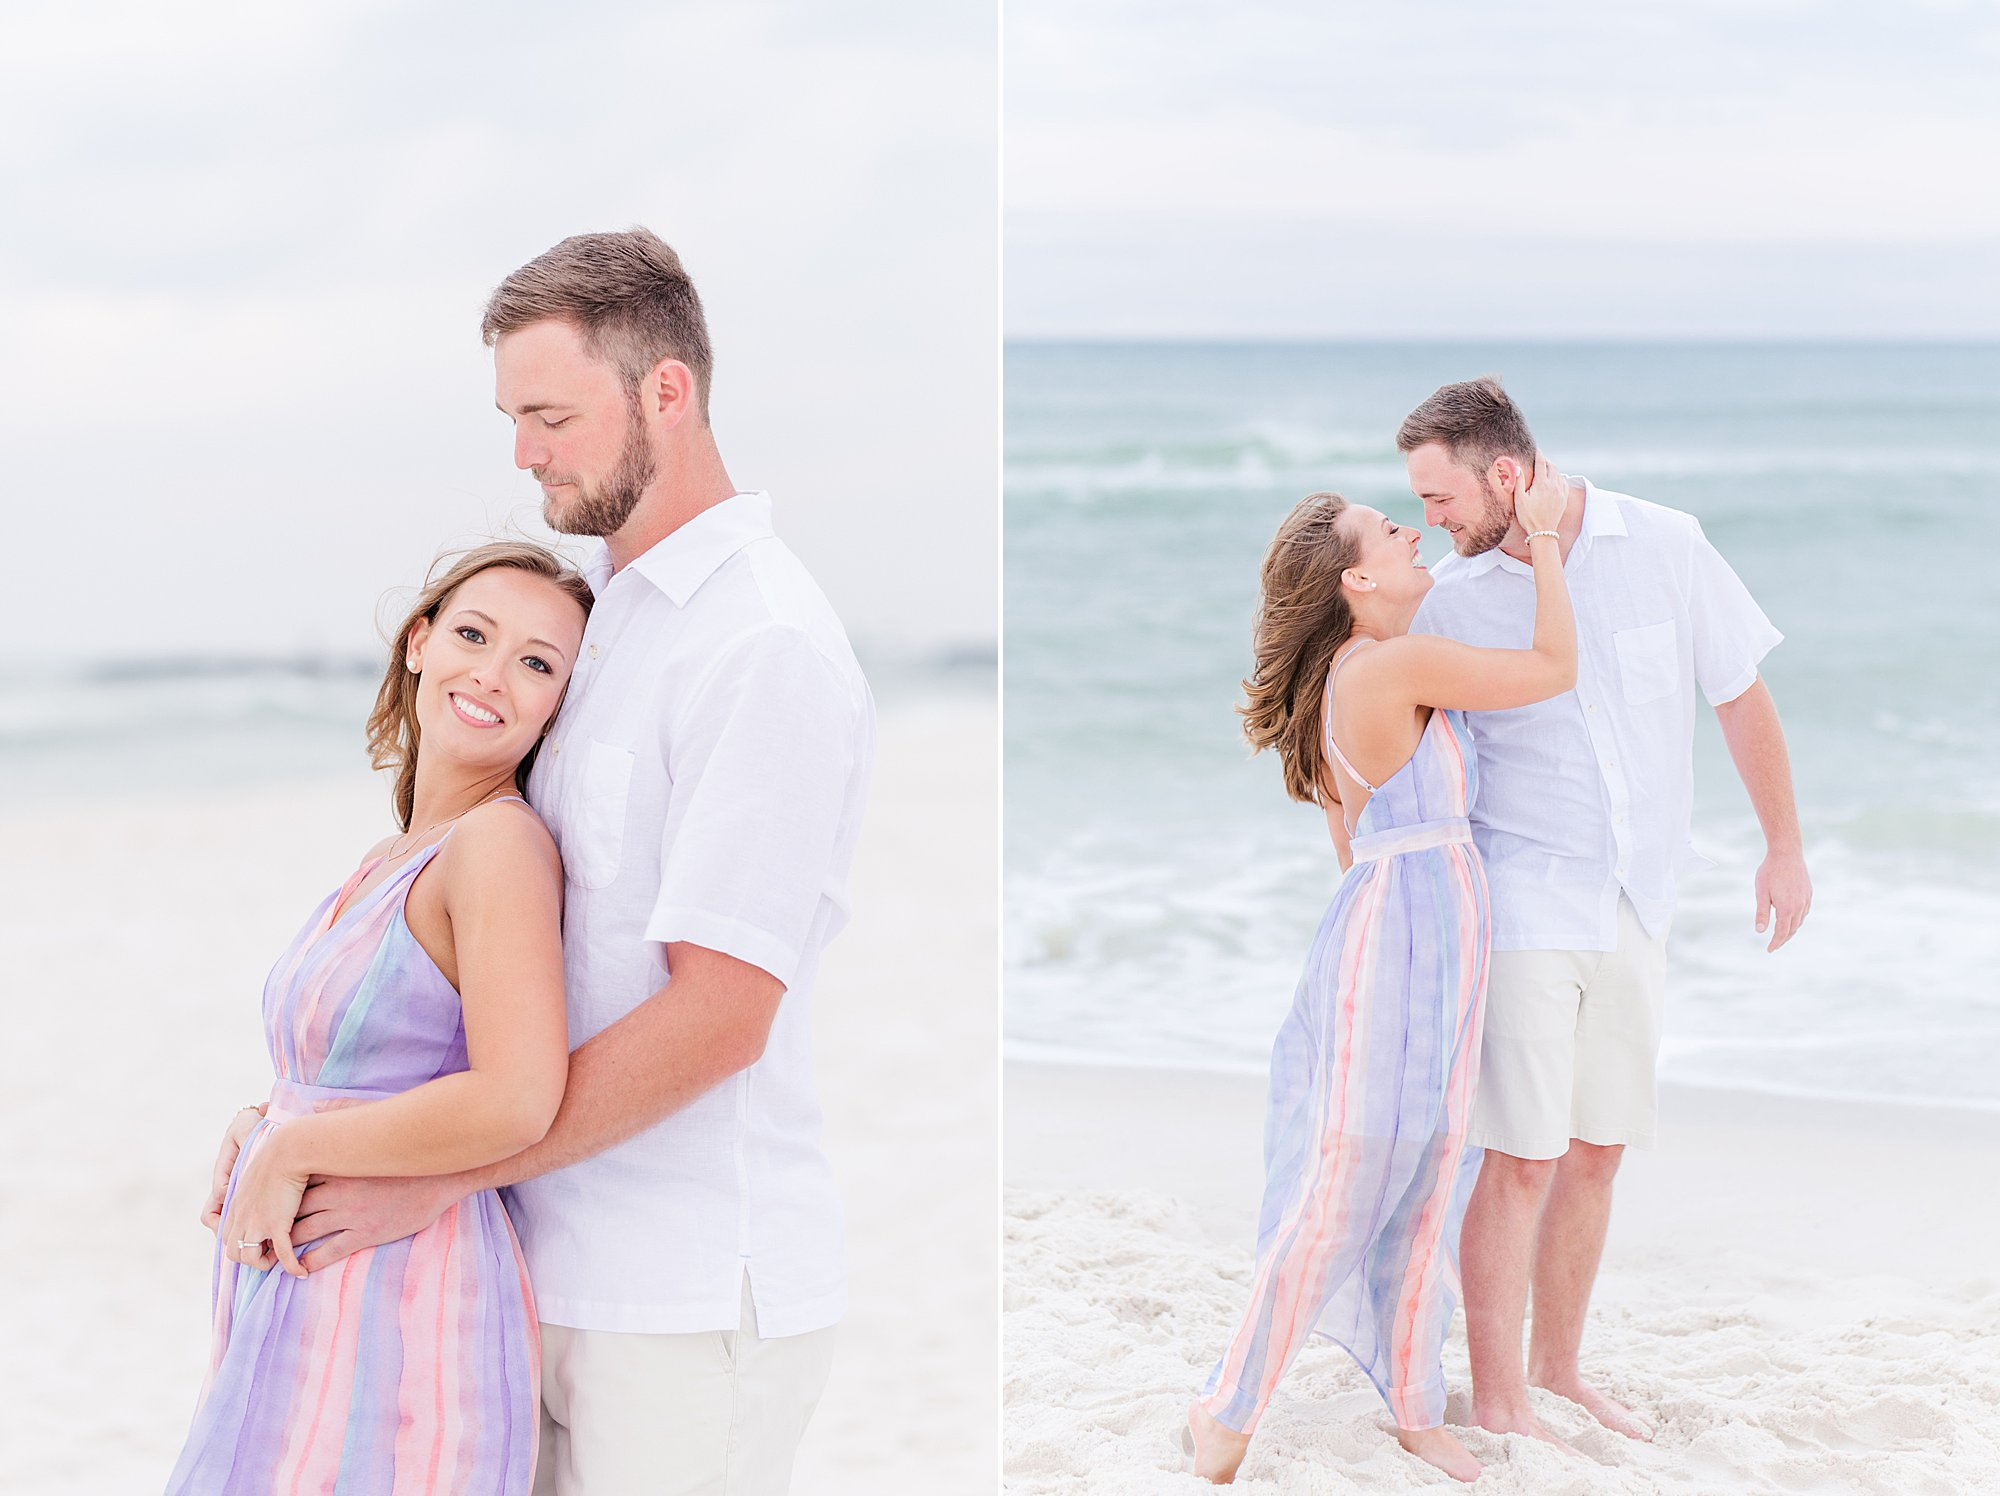 Bride and Groom snuggling at the beach engagement session in Orange Beach, Alabama